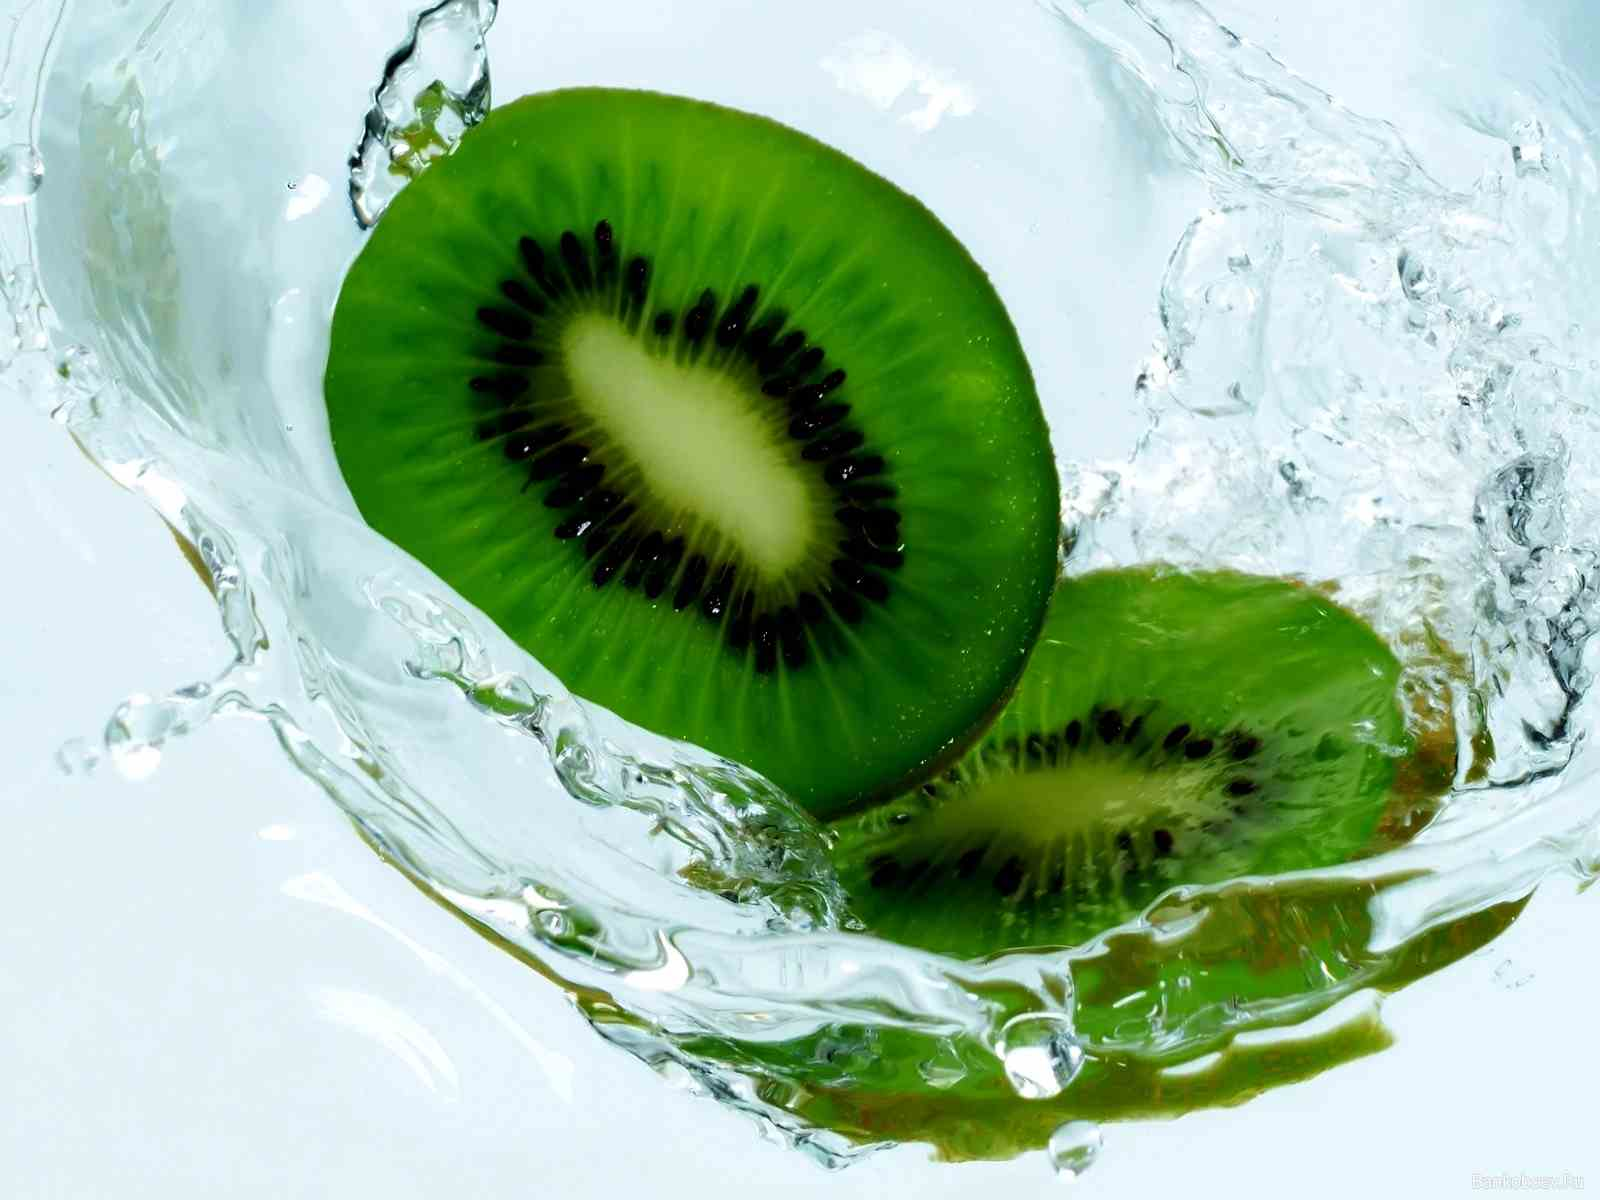 kiwi fruit wallpaper for desktop 1600x1200